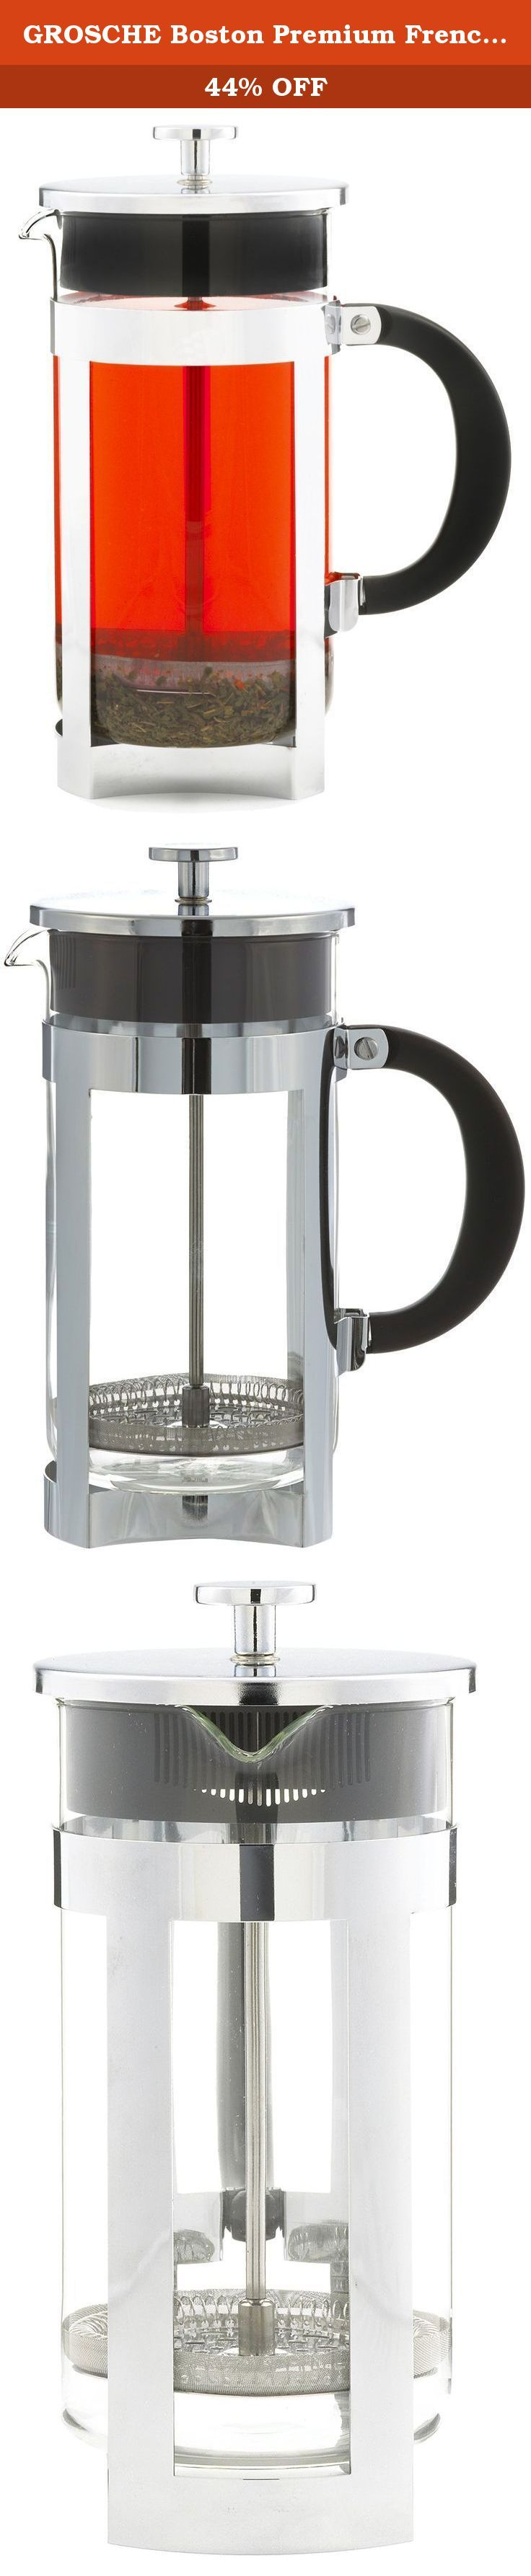 GROSCHE Boston Premium French Press Coffee and Tea Maker (1000 ml (34 oz.)). Would you like a true premium French Press coffee maker unlike the common types everybody else seems to have? Quality you can see and feel, makes you the tastiest coffee or tea and gives a bold look and presence to your table top. That's the BOSTON French Press coffee and tea maker by GROSCHE. A uniquely designed and crafted French Press with fine chrome construction makes for a wonderful table top coffee and tea...